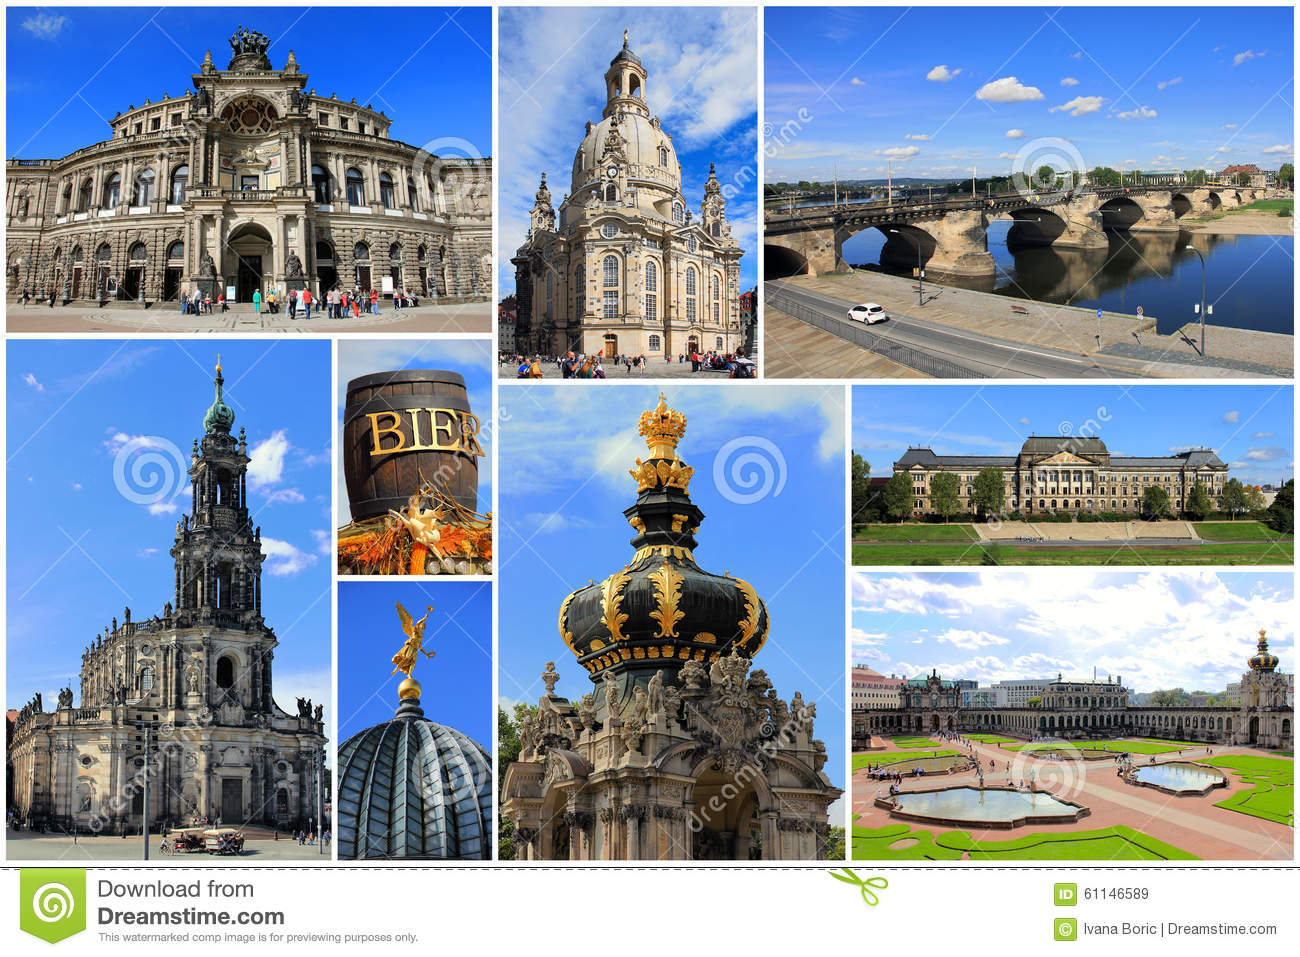 Stock Photo Landmarks Collage Dresden Saxony Germany Travel Most Known Image61146589 on A Frame Building Plans